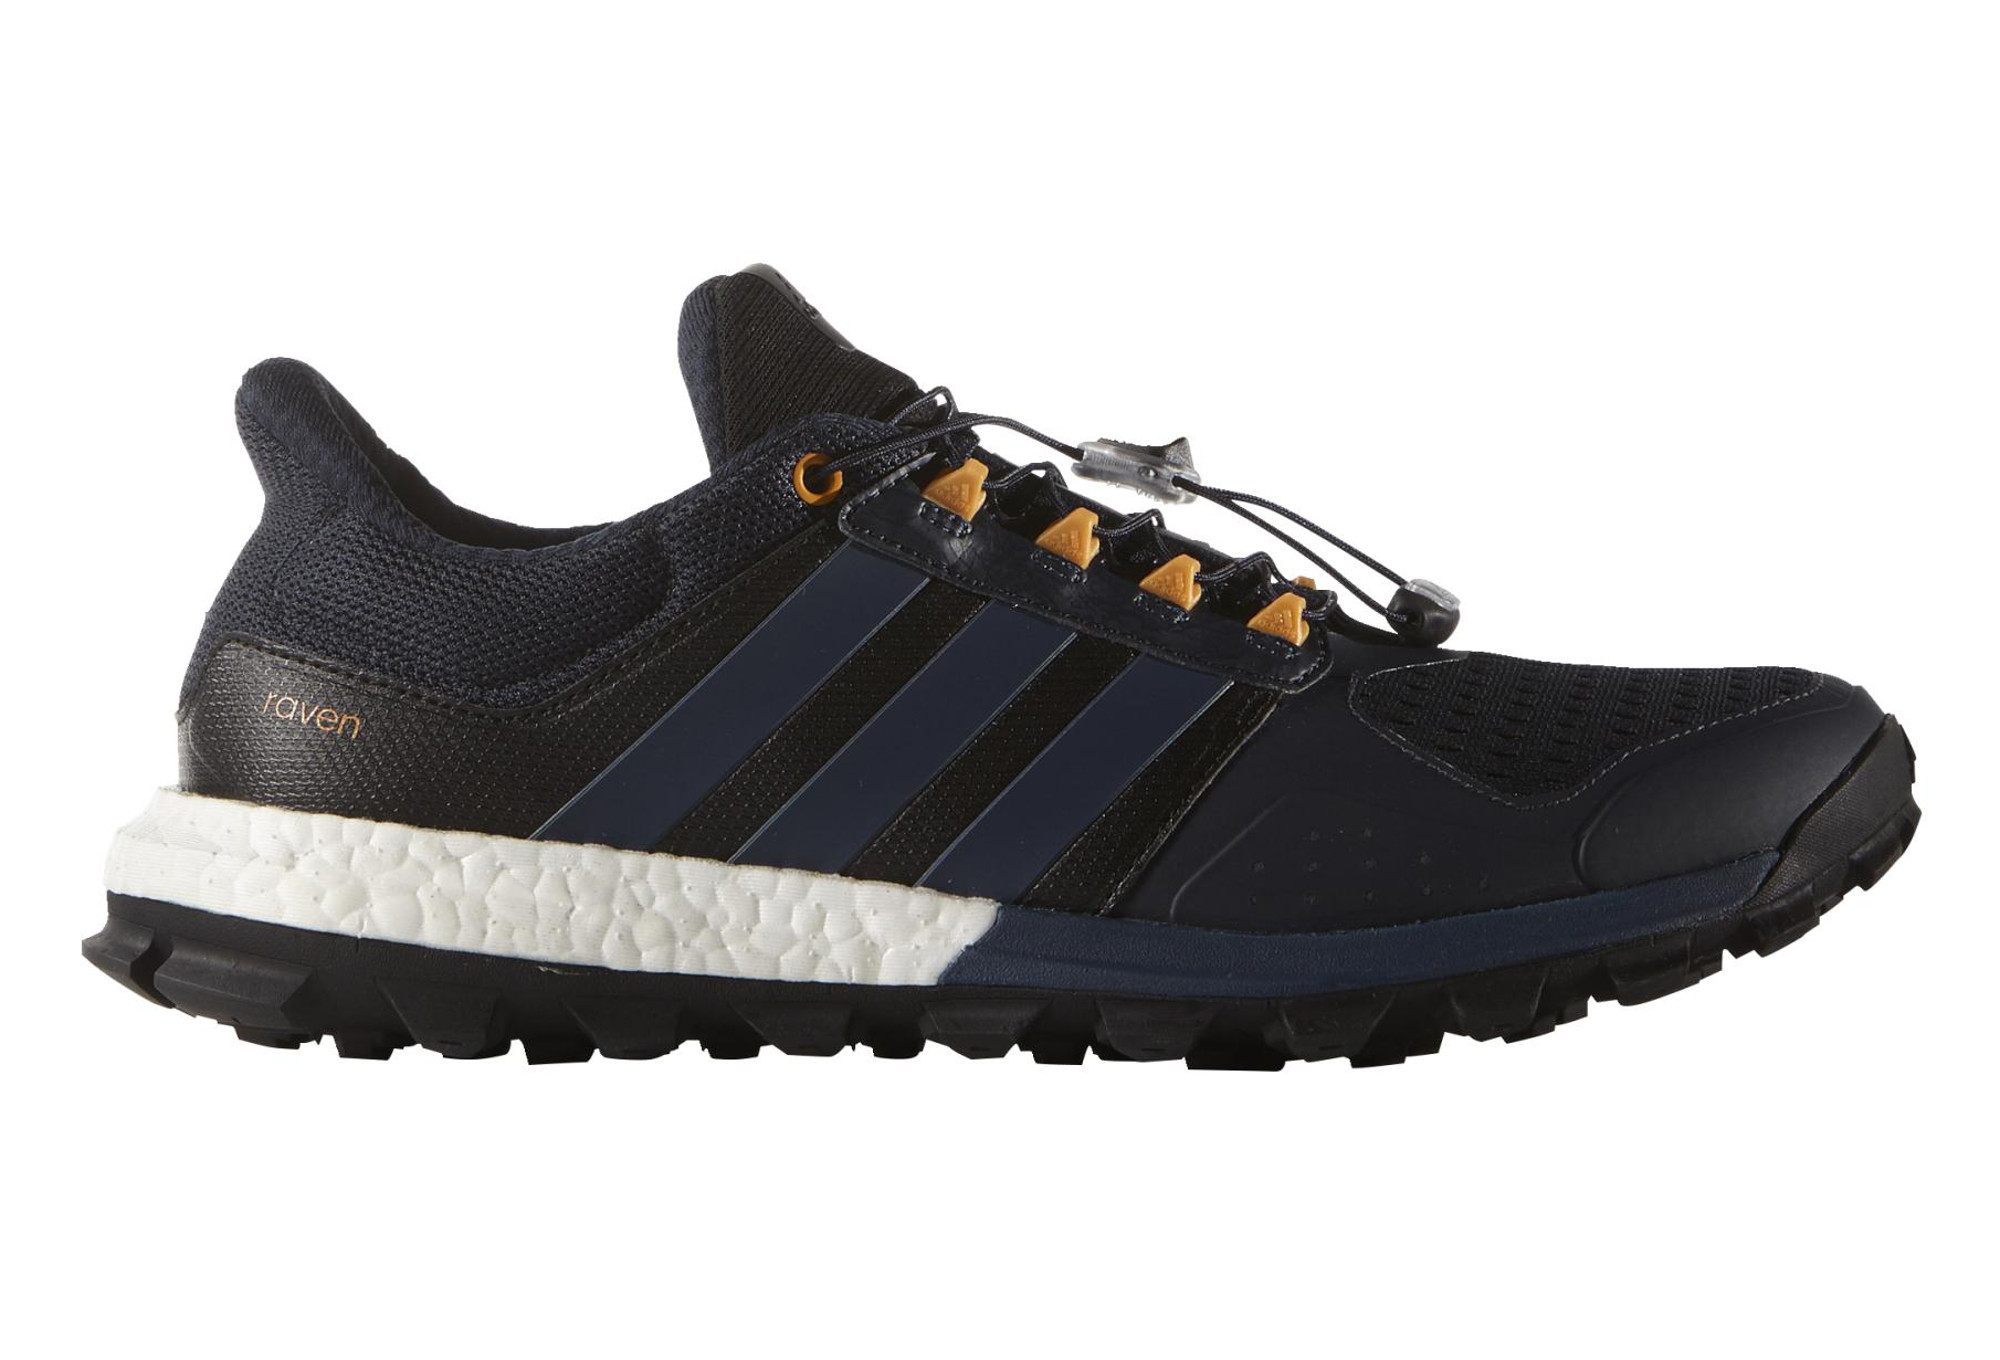 adidas raven boost homme